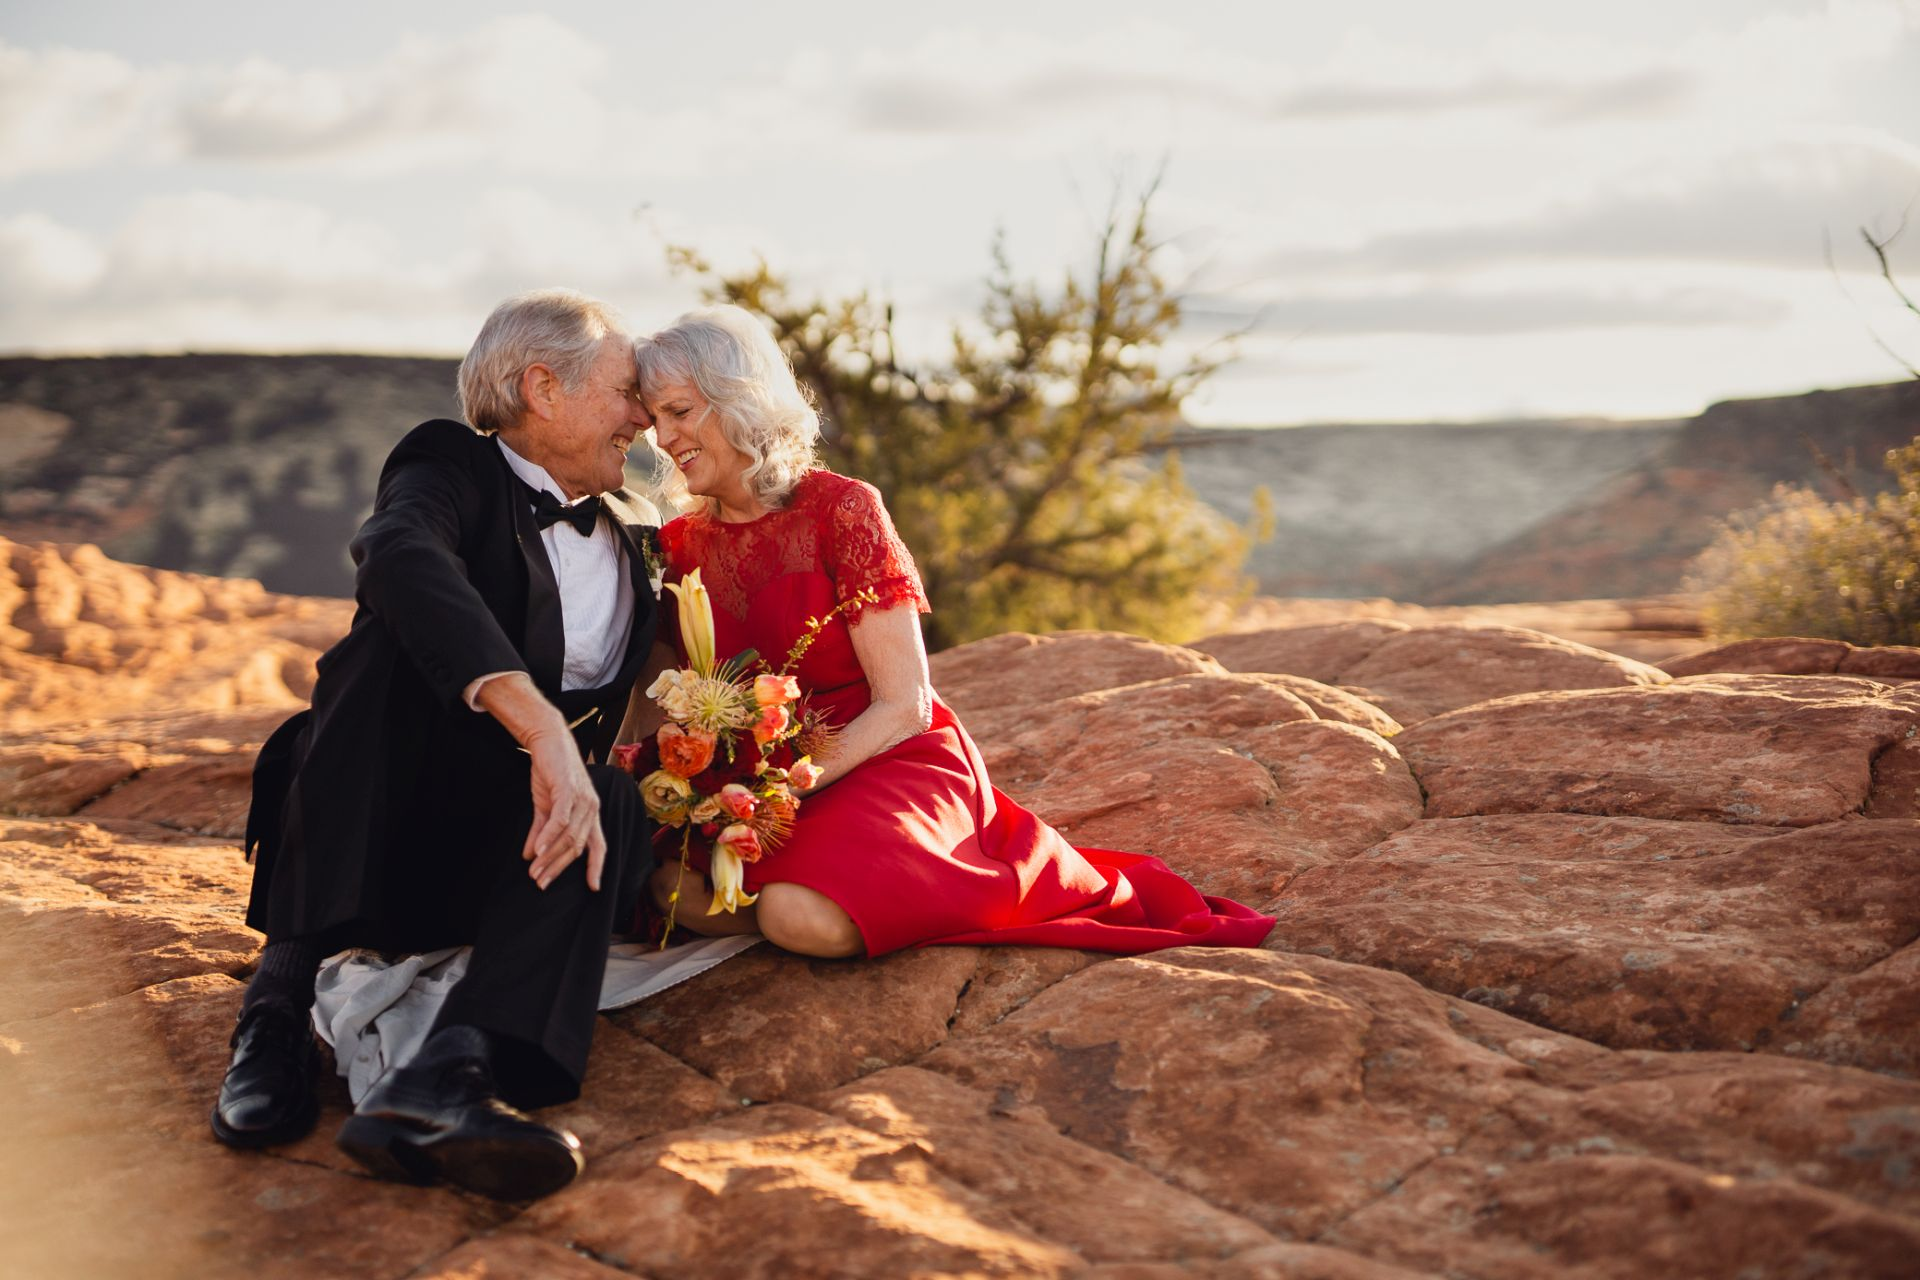 Hiking Wedding Utah Desert - deeply in love couple